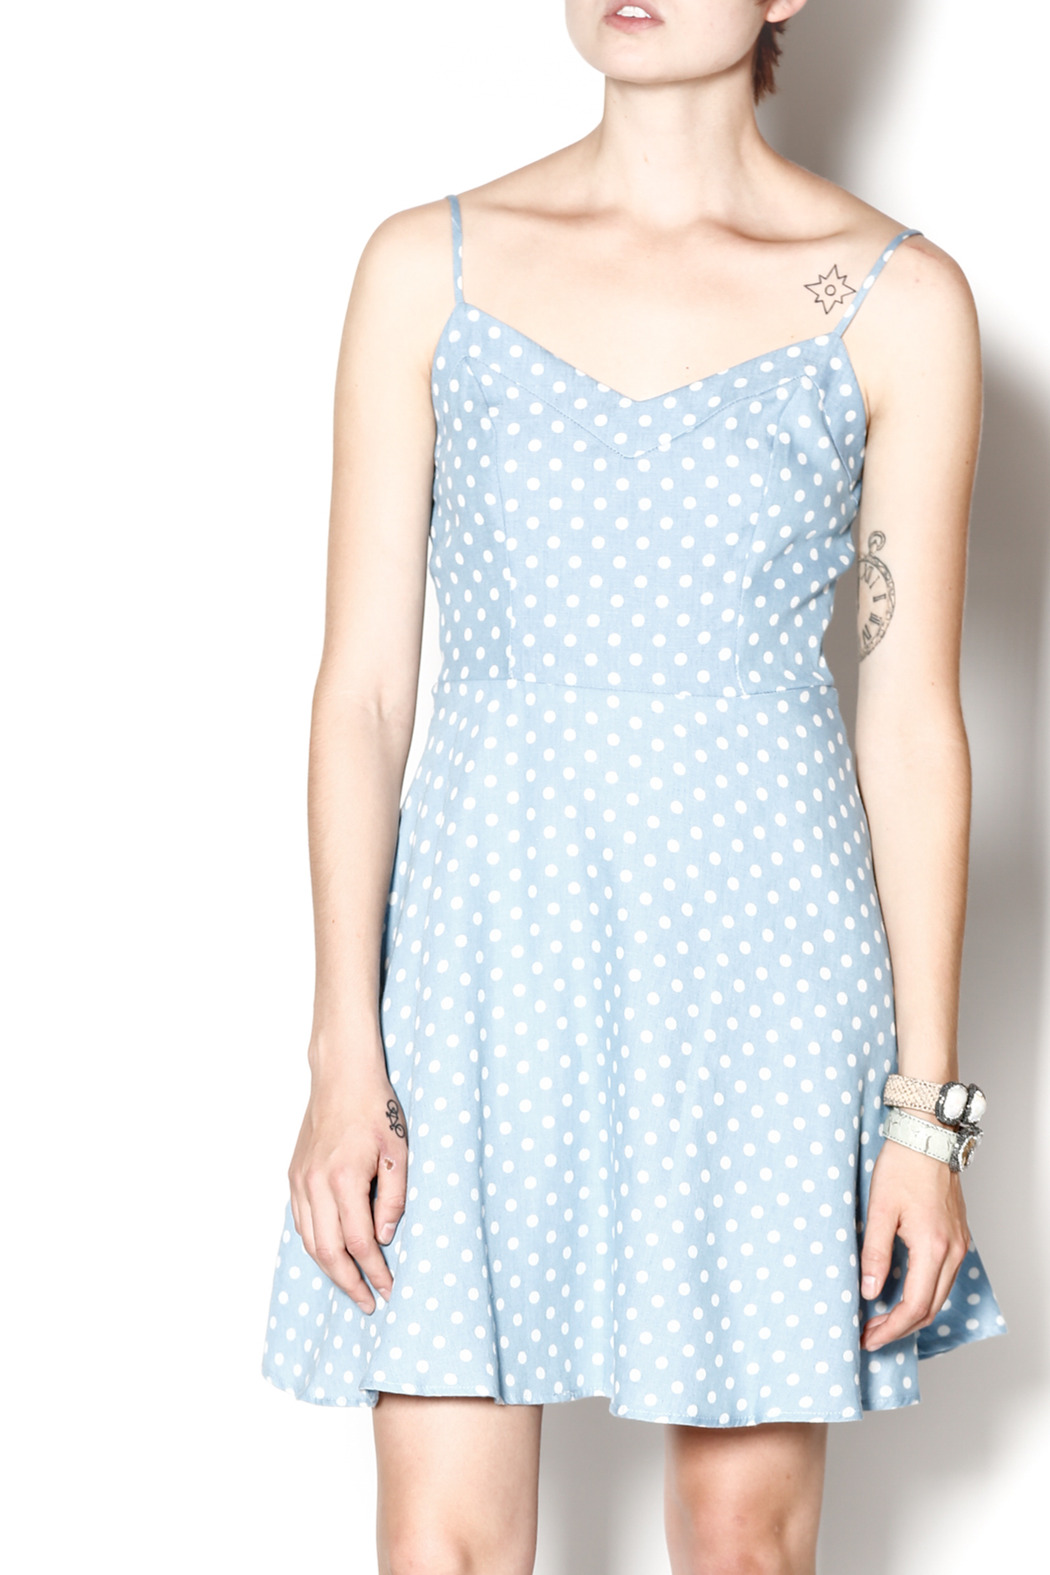 Everly Dotty Chambray Dress - Main Image